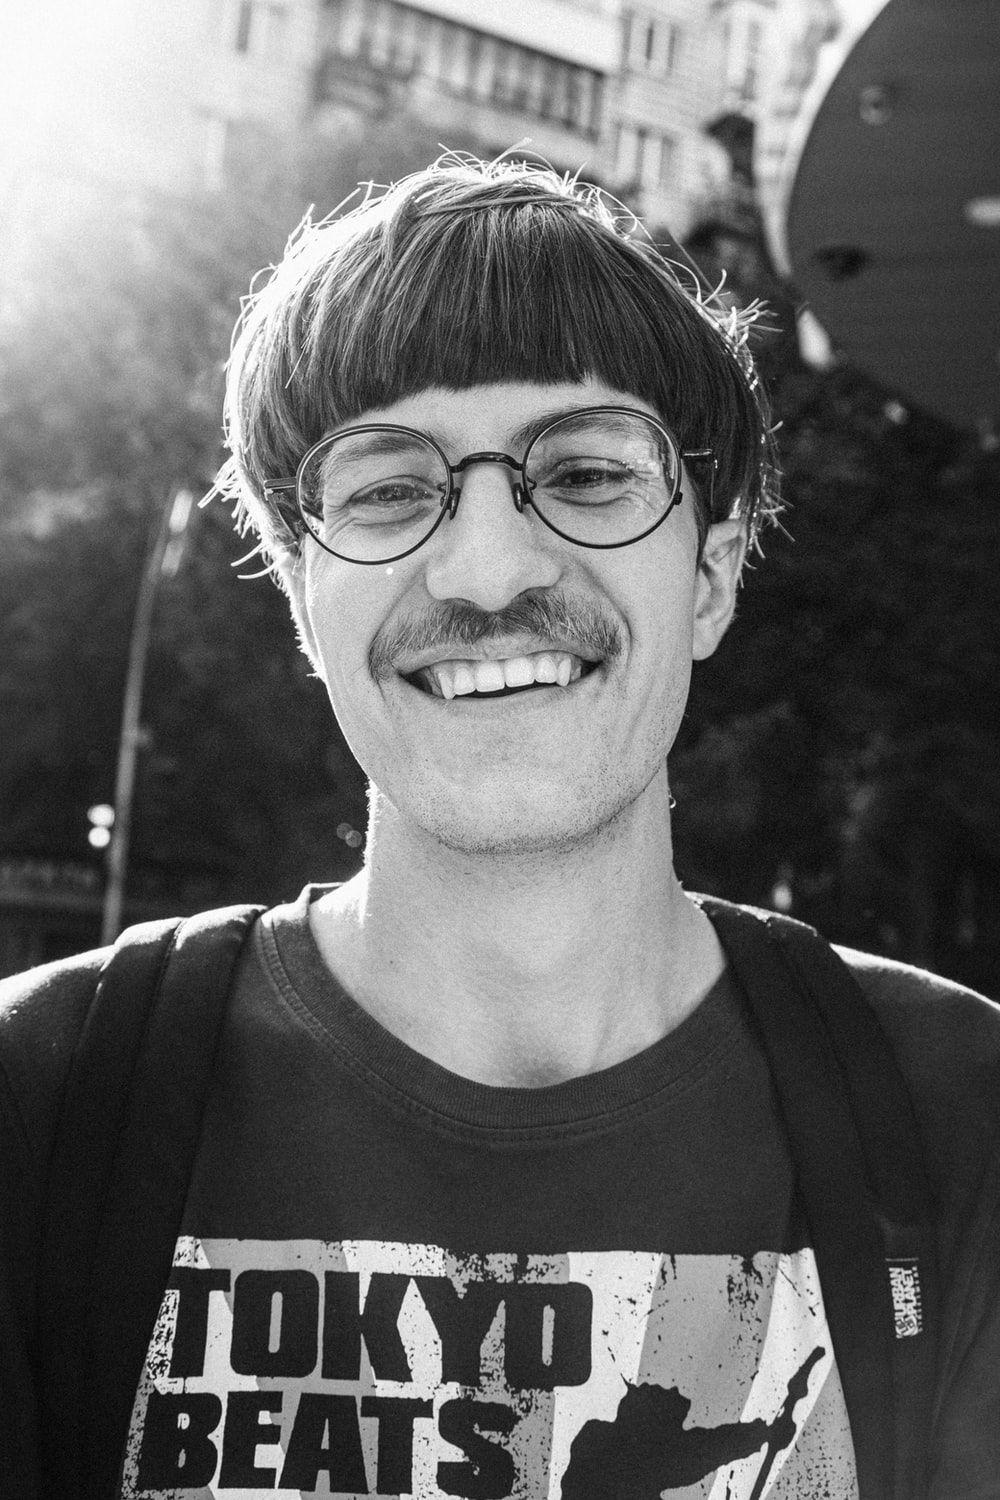 grayscale photo of man in crew neck shirt and eyeglasses